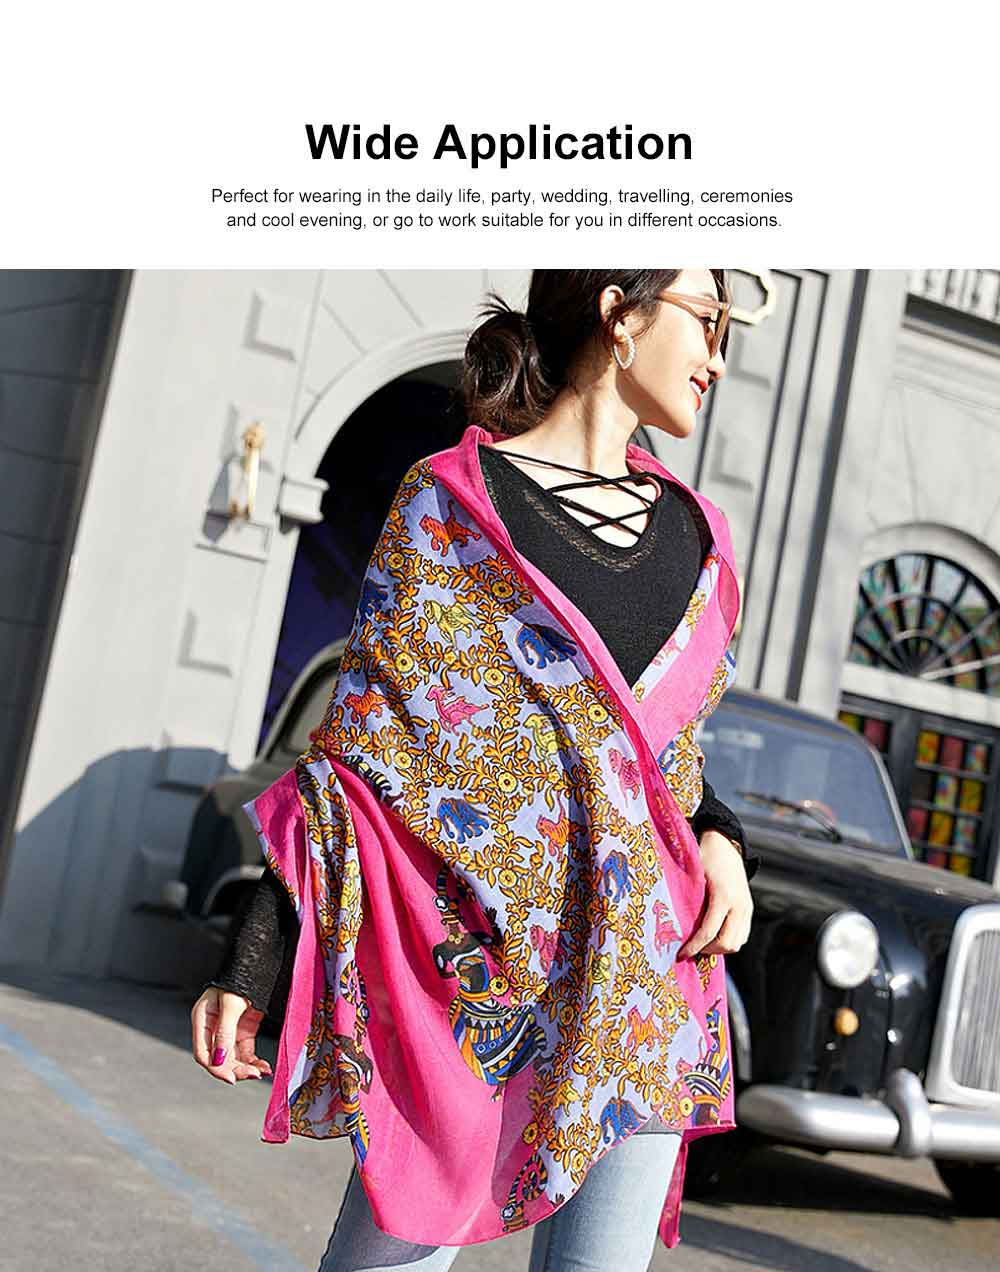 Women Printing Scarves Large Sunscreen Shawl Beach Cover-up Fashion Accessories Best Gifts for Women 3